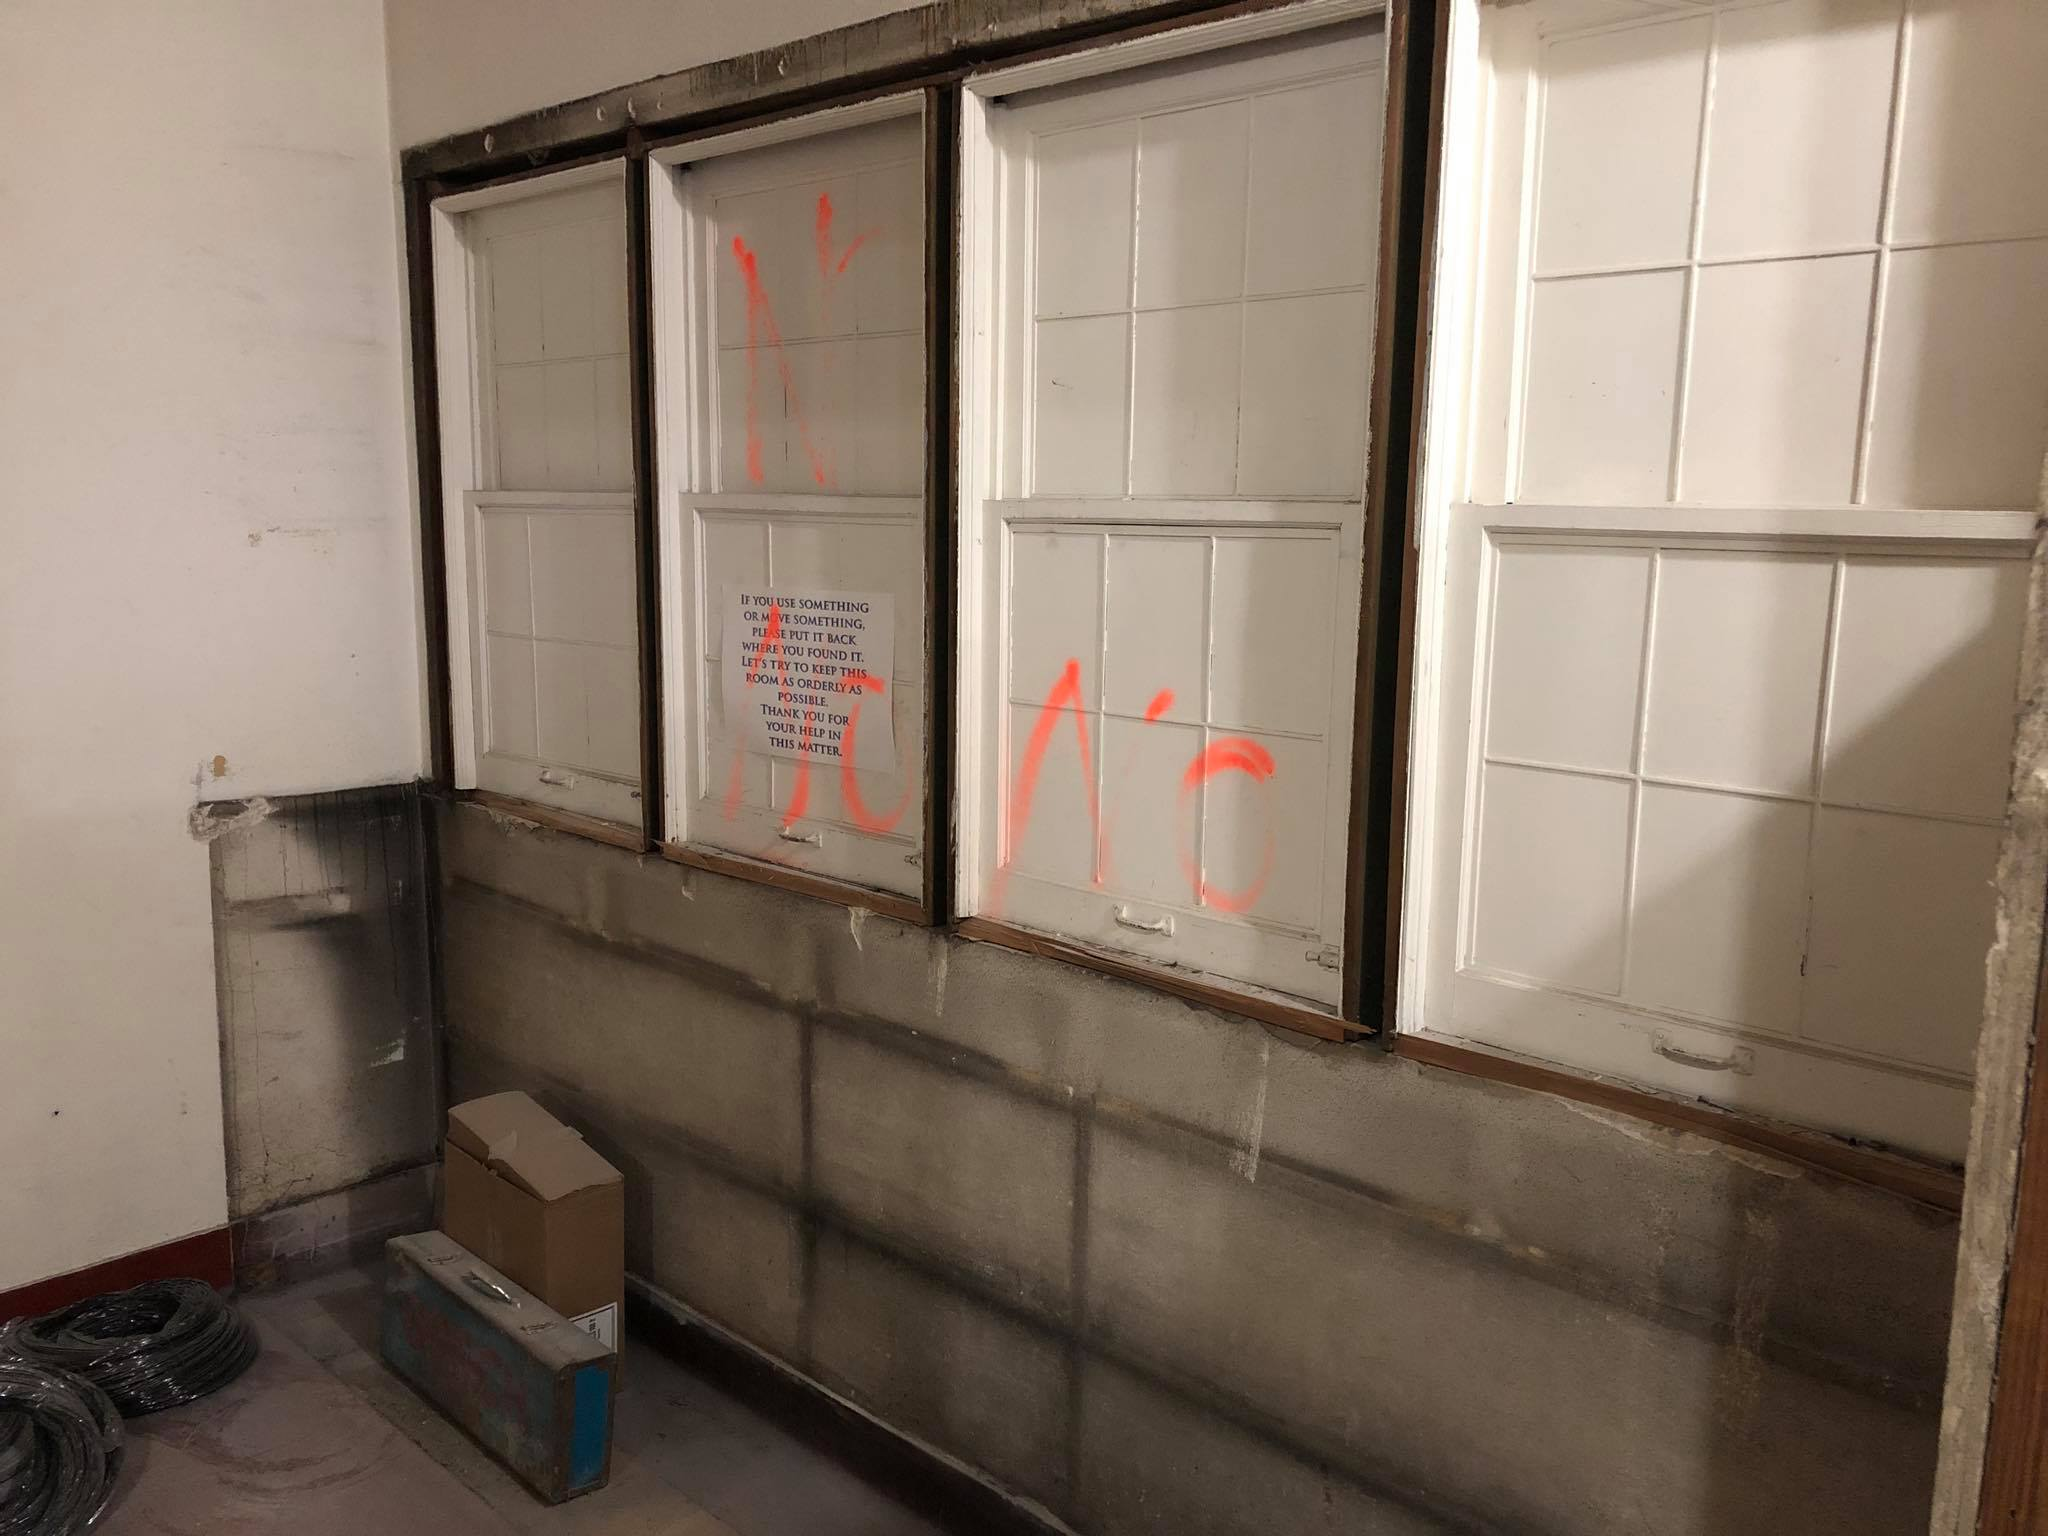 The original reception counter windows from the building's first iteration as the South Bend Clinic.